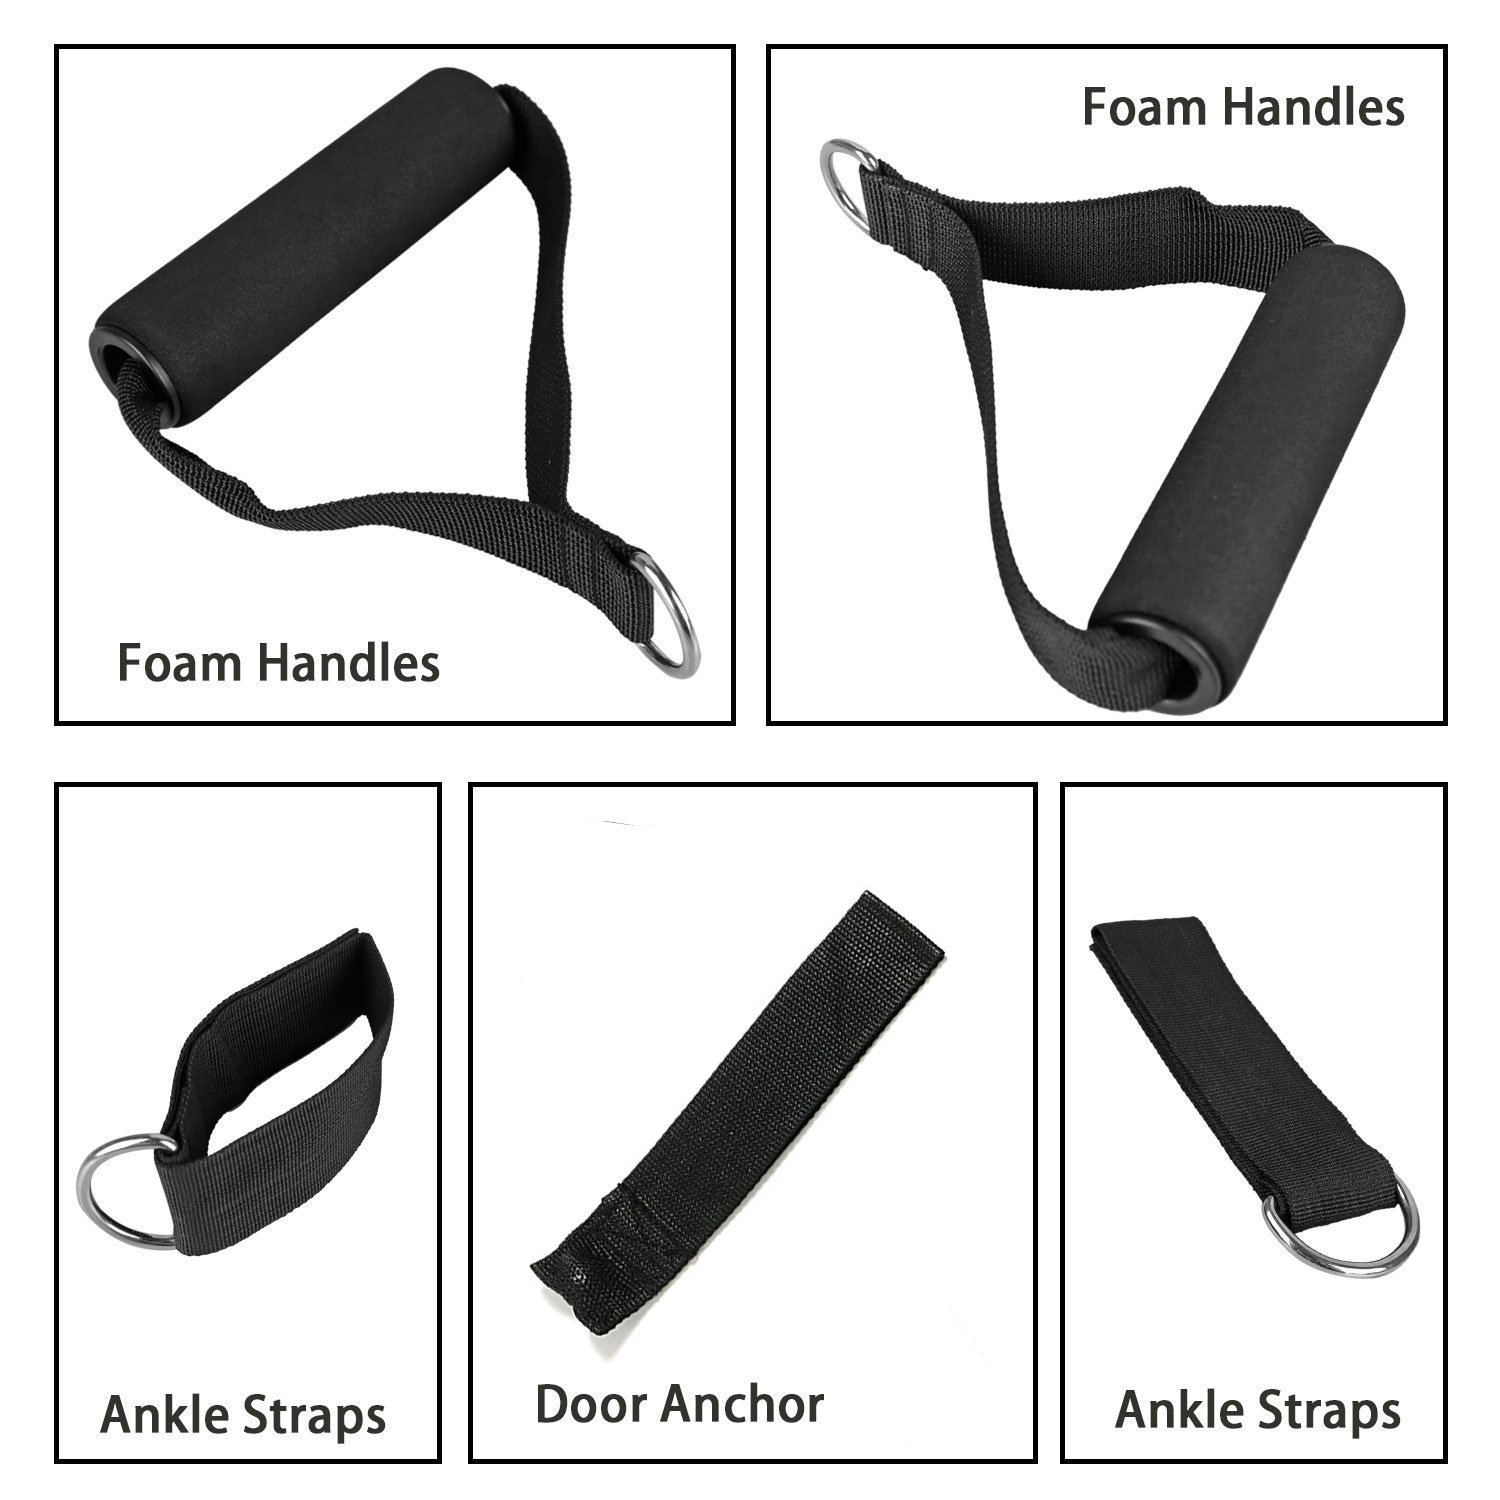 Resistance Bands Kit 5 Pieces of Exercise tube Fitness Stretch Bands with Foam Handles, Door Anchor, Ankle Straps Workout Guide for Building Muscle, Fat Loss, Rehabilitative Exercises